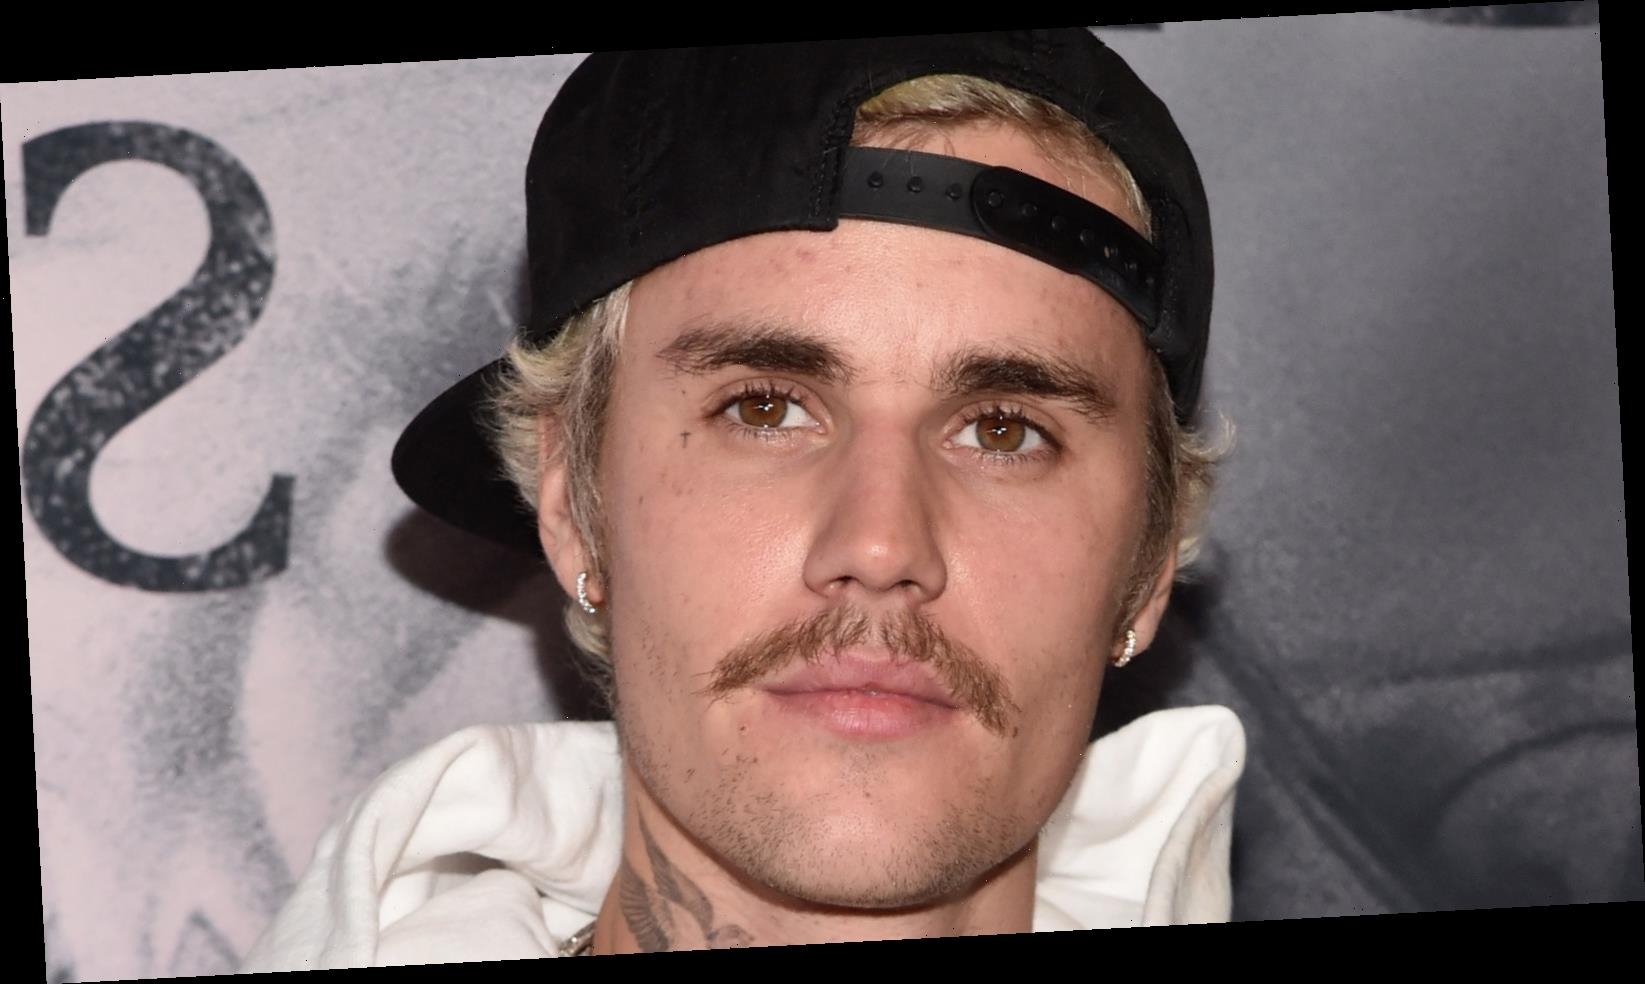 Justin Bieber reveals he's growing out his hair to look like this star